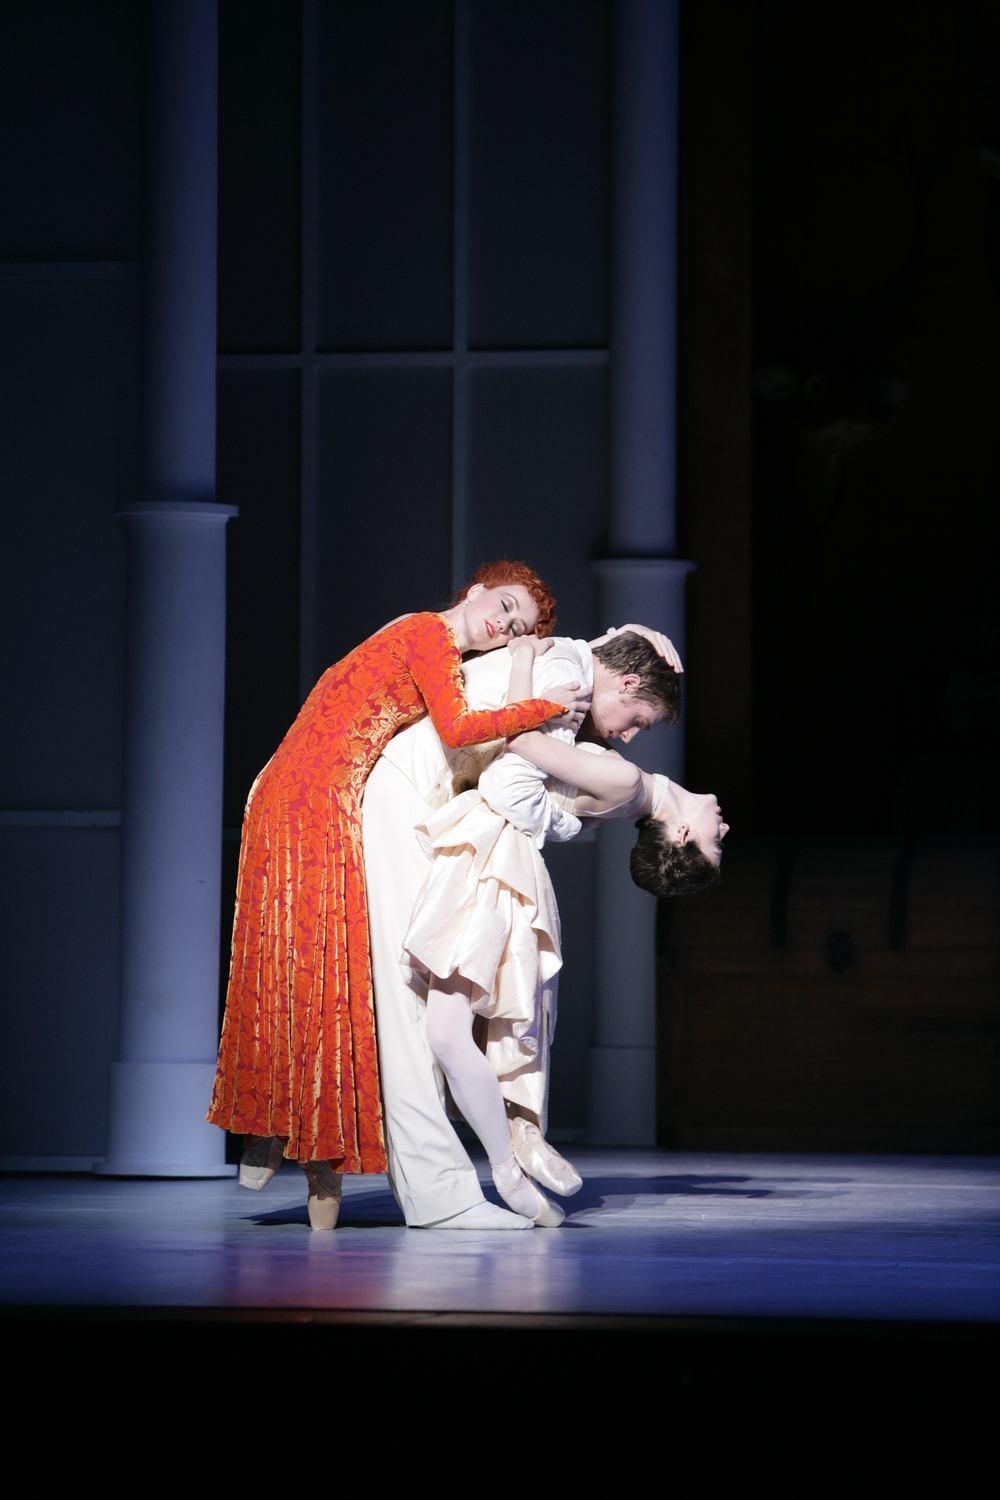 Juliet Burnett as Sophie with Lucinda Dunn as Marschallin and Ty King-Wall as Octavian in Graeme Murphy's The Silver Rose